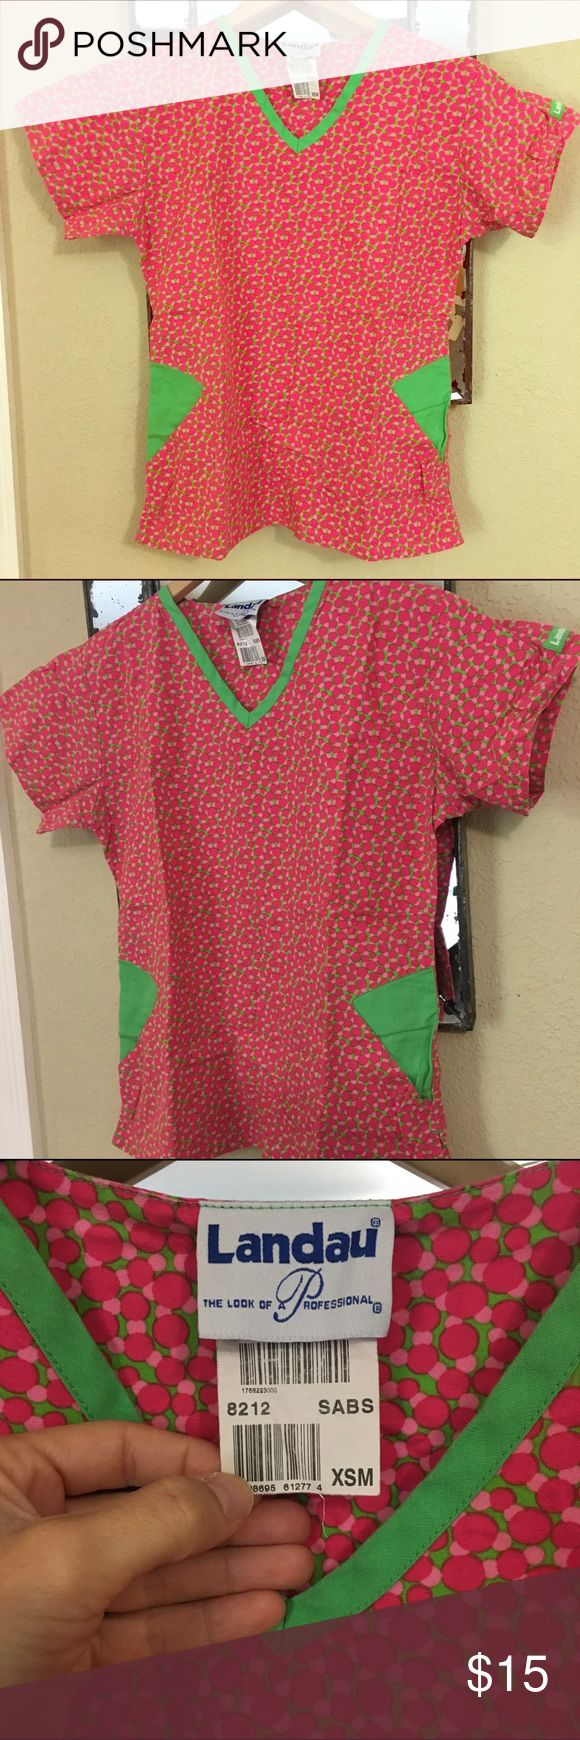 Landau Scrub Top This is the most adorable scrub top! Bright pink and green and has two size pockets. It was my favorite and it's in EUC! First picture is filtered. Landau Tops